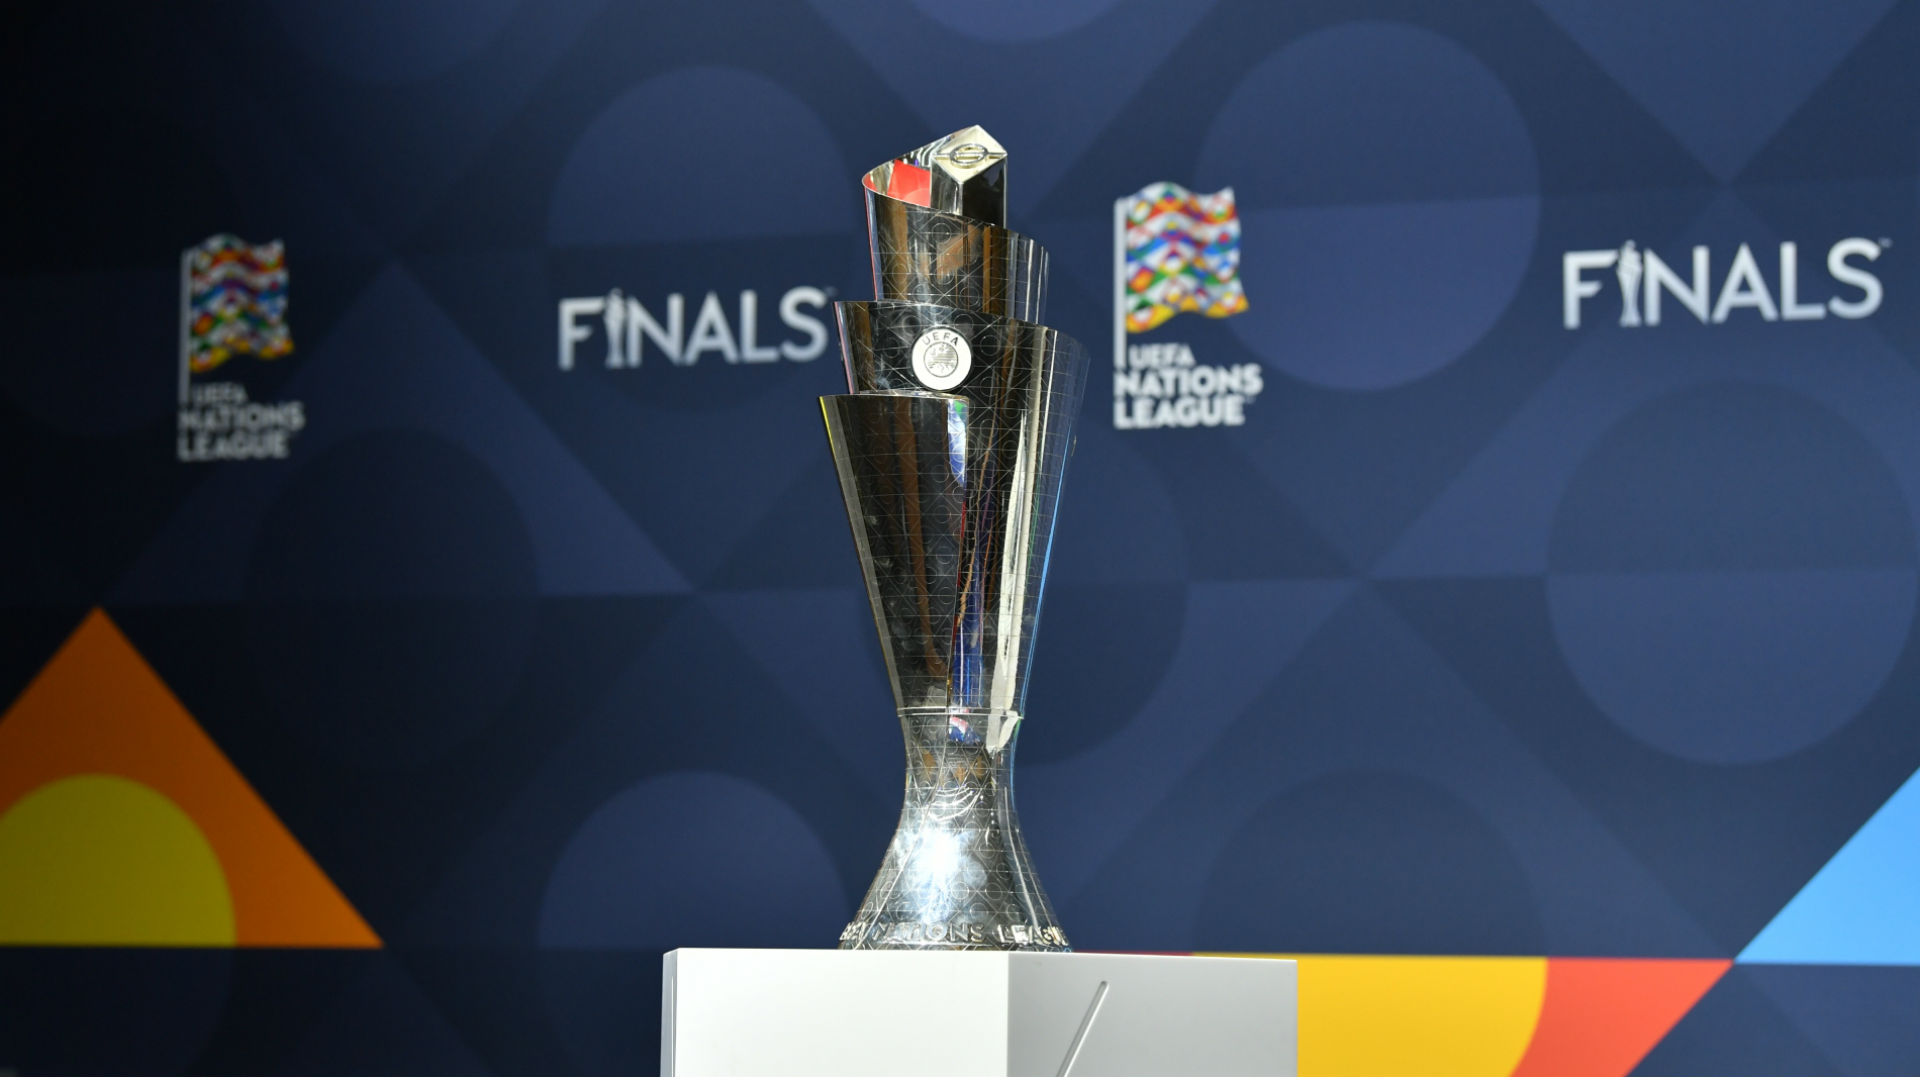 Hosts Italy draw Spain, France to face Belgium in Nations League finals